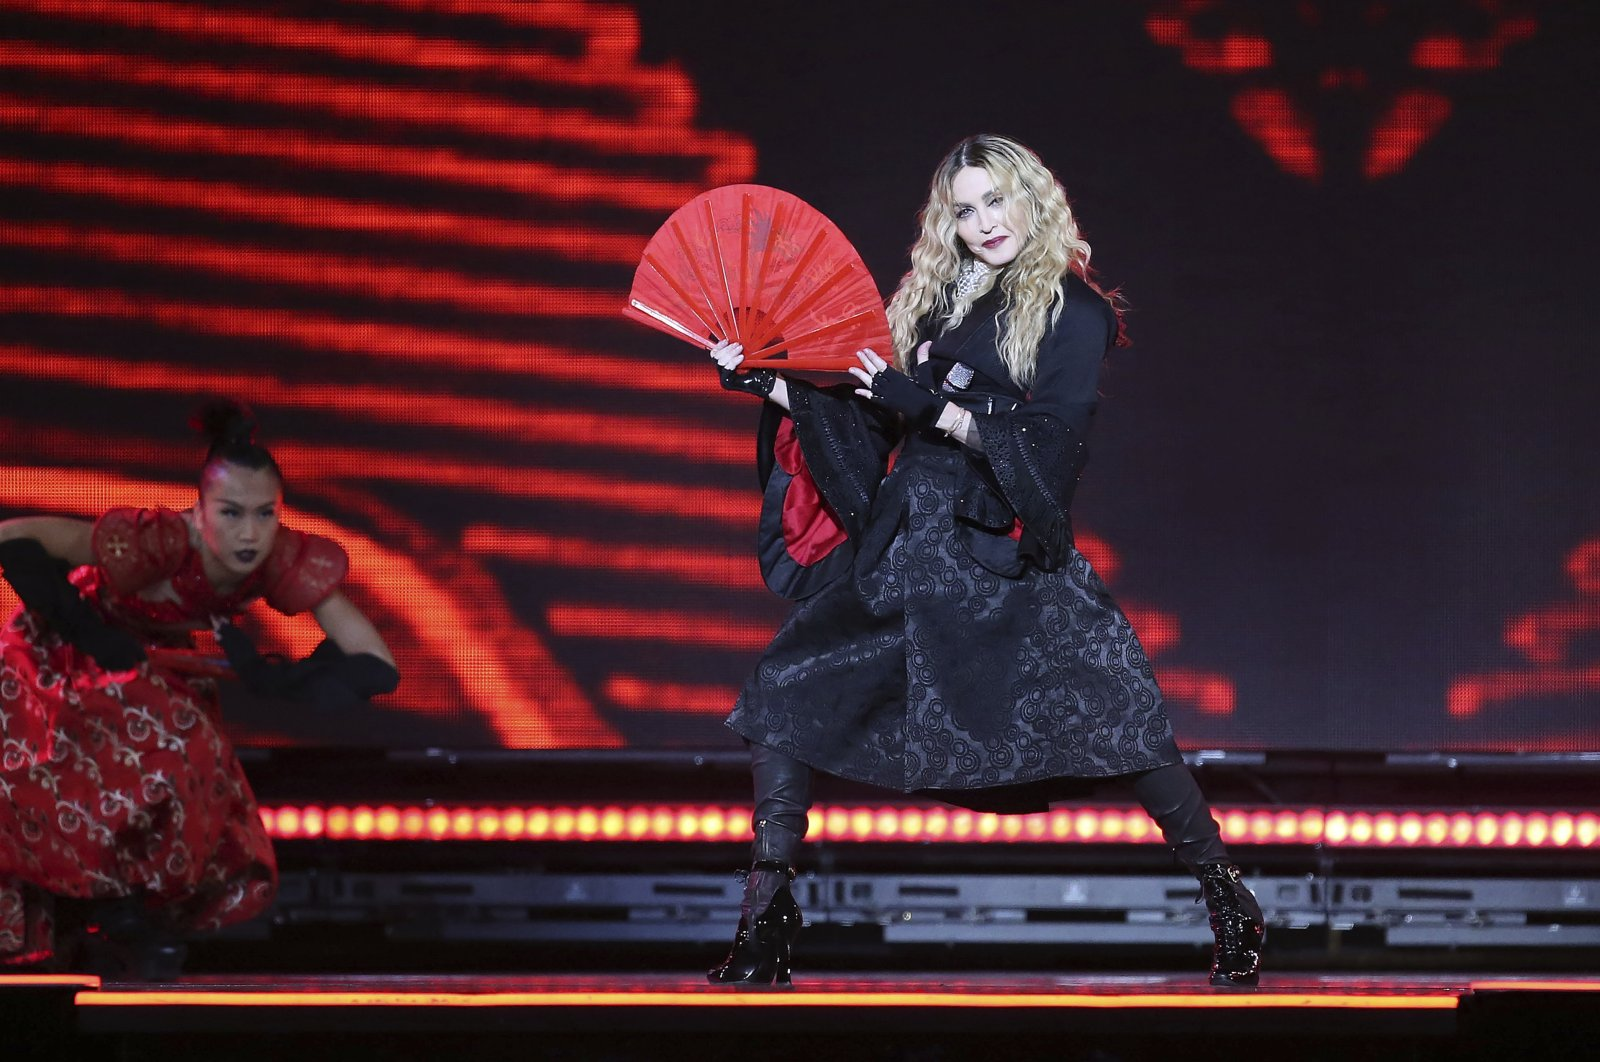 Madonna performs on stage as part of her Rebel Heart Tour, in London, U.K., Dec. 1, 2015. (AP Photo)